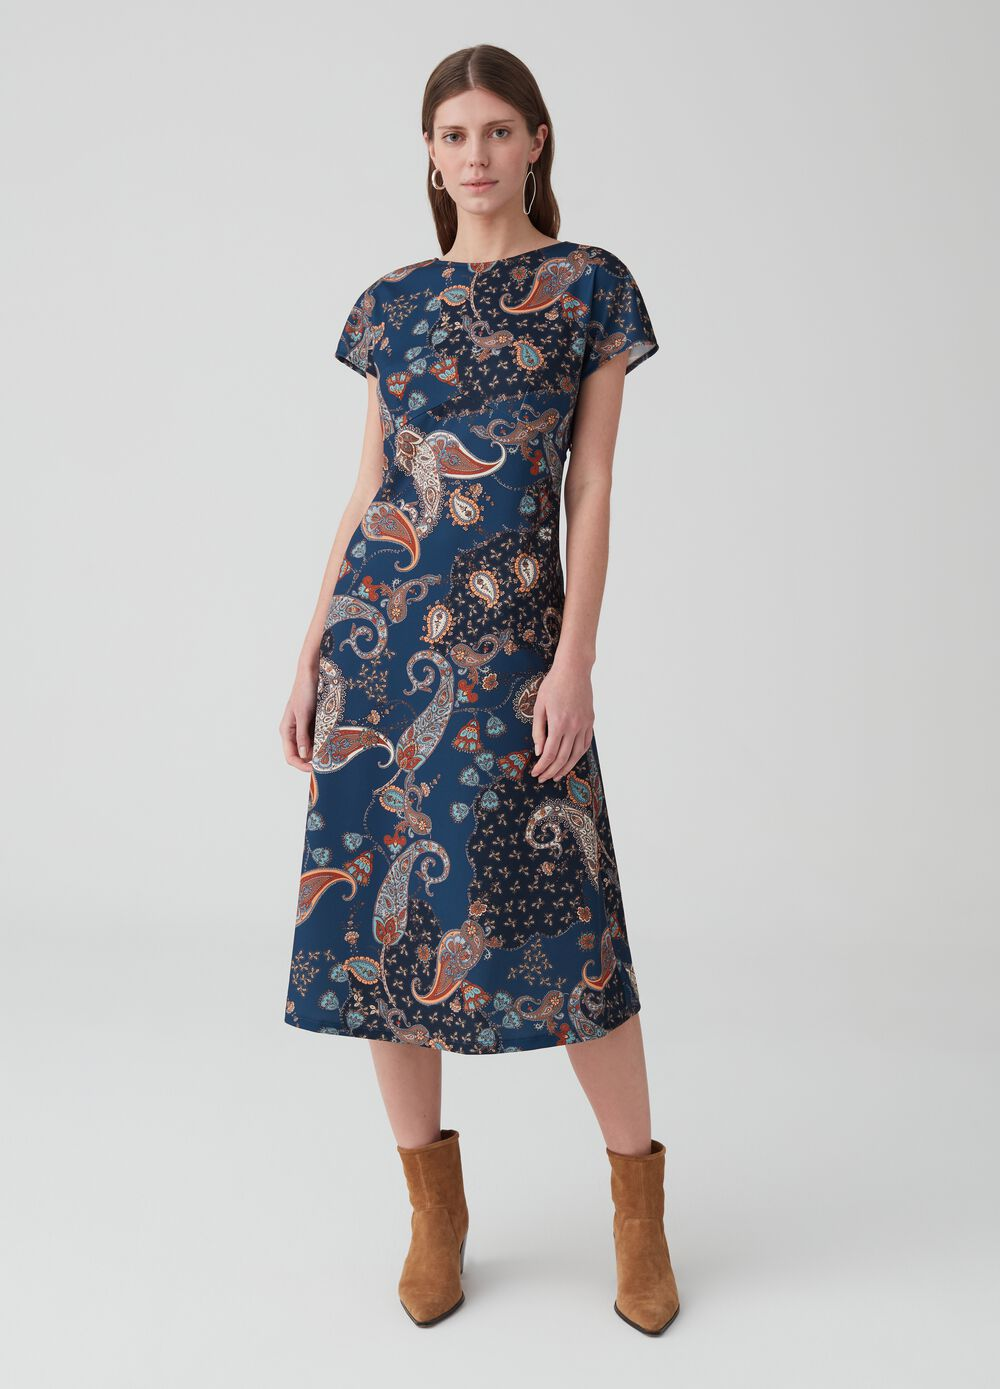 Short-sleeved dress with paisley pattern